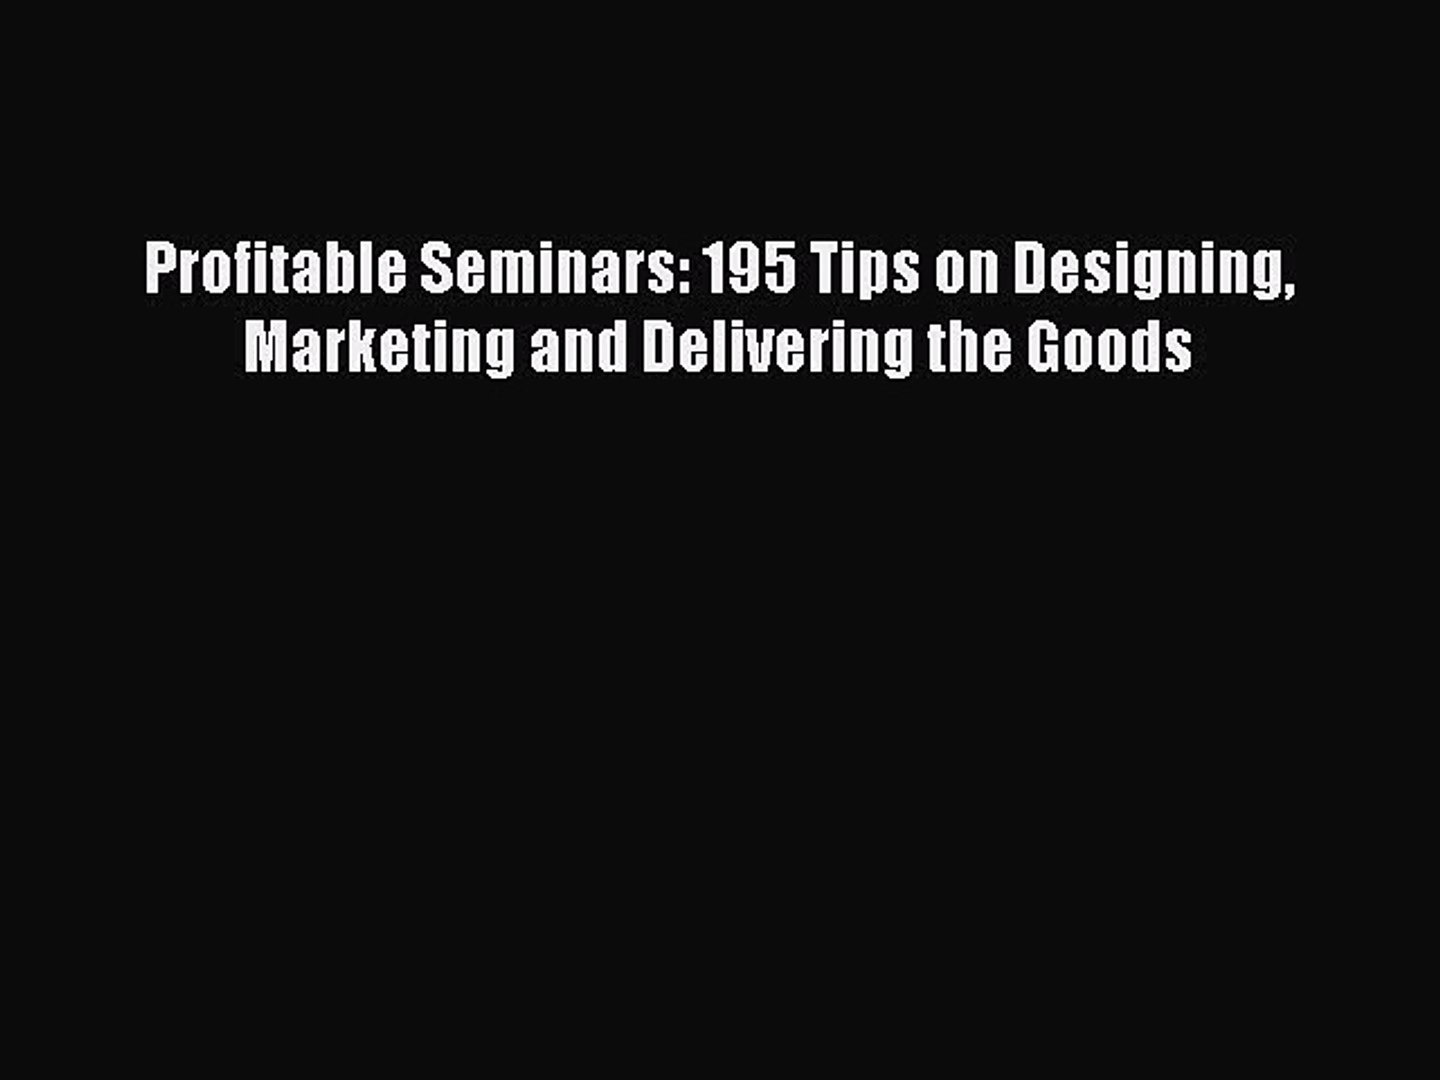 [Read PDF] Profitable Seminars: 195 Tips on Designing Marketing and Delivering the Goods Download